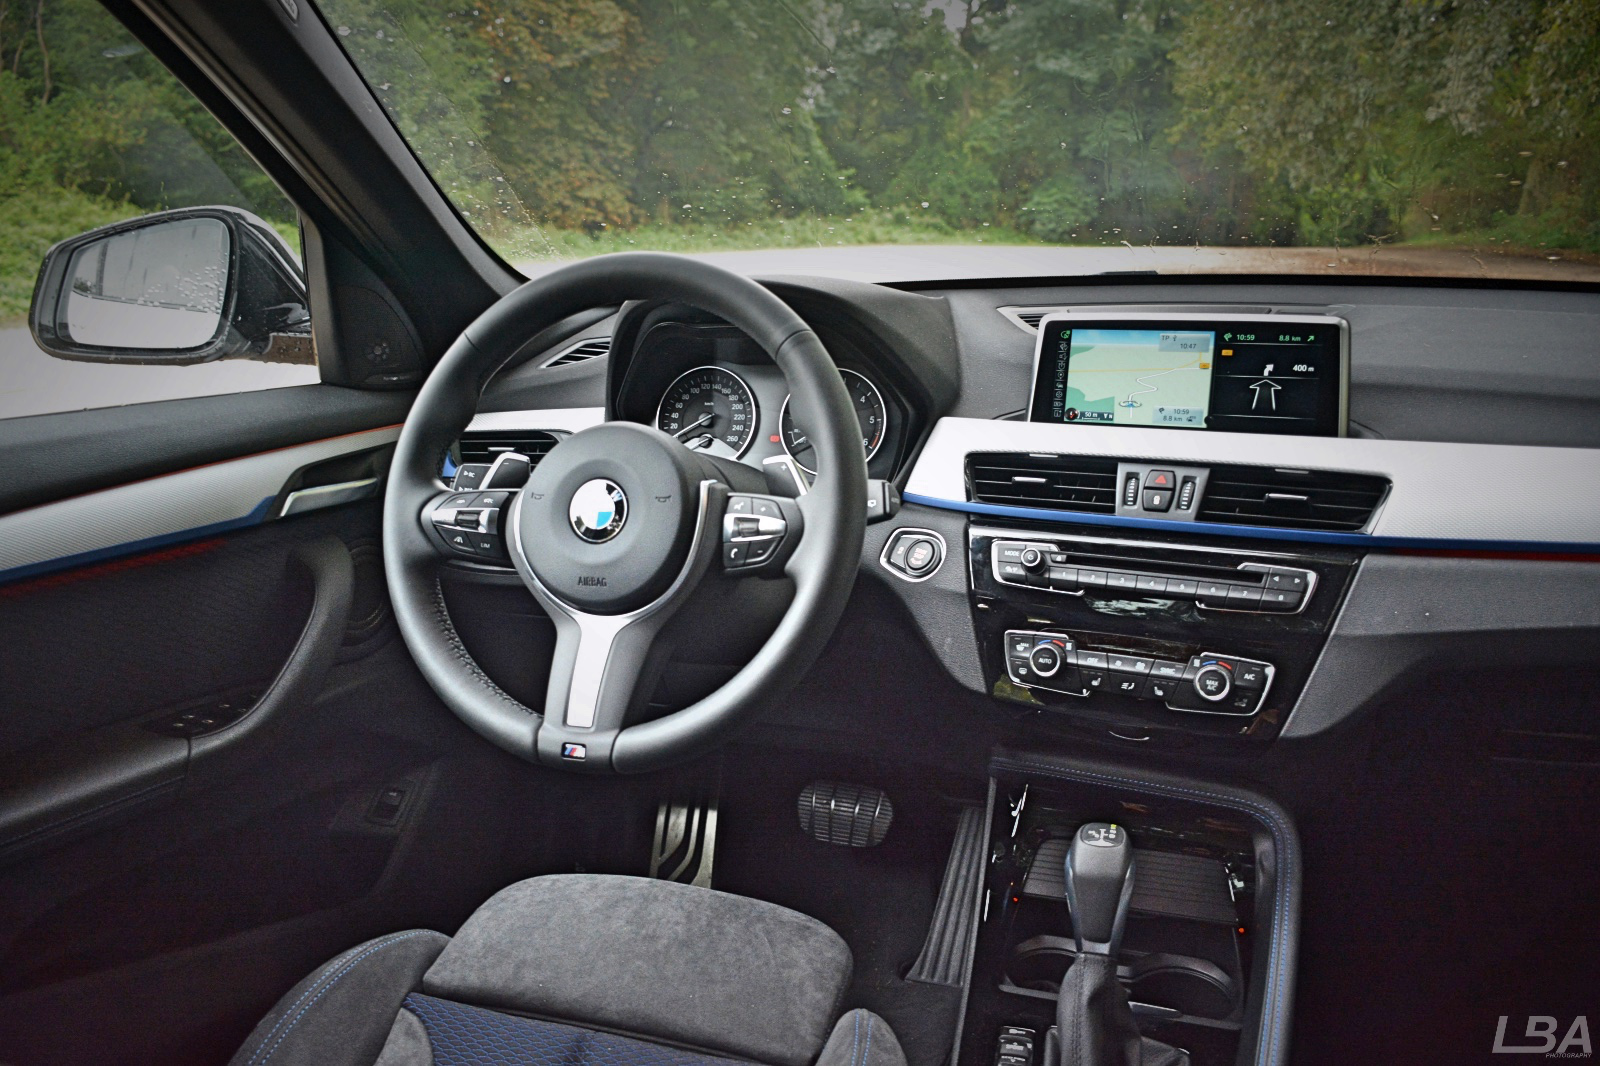 essai bmw x1 25d f48 le billet auto test drive. Black Bedroom Furniture Sets. Home Design Ideas